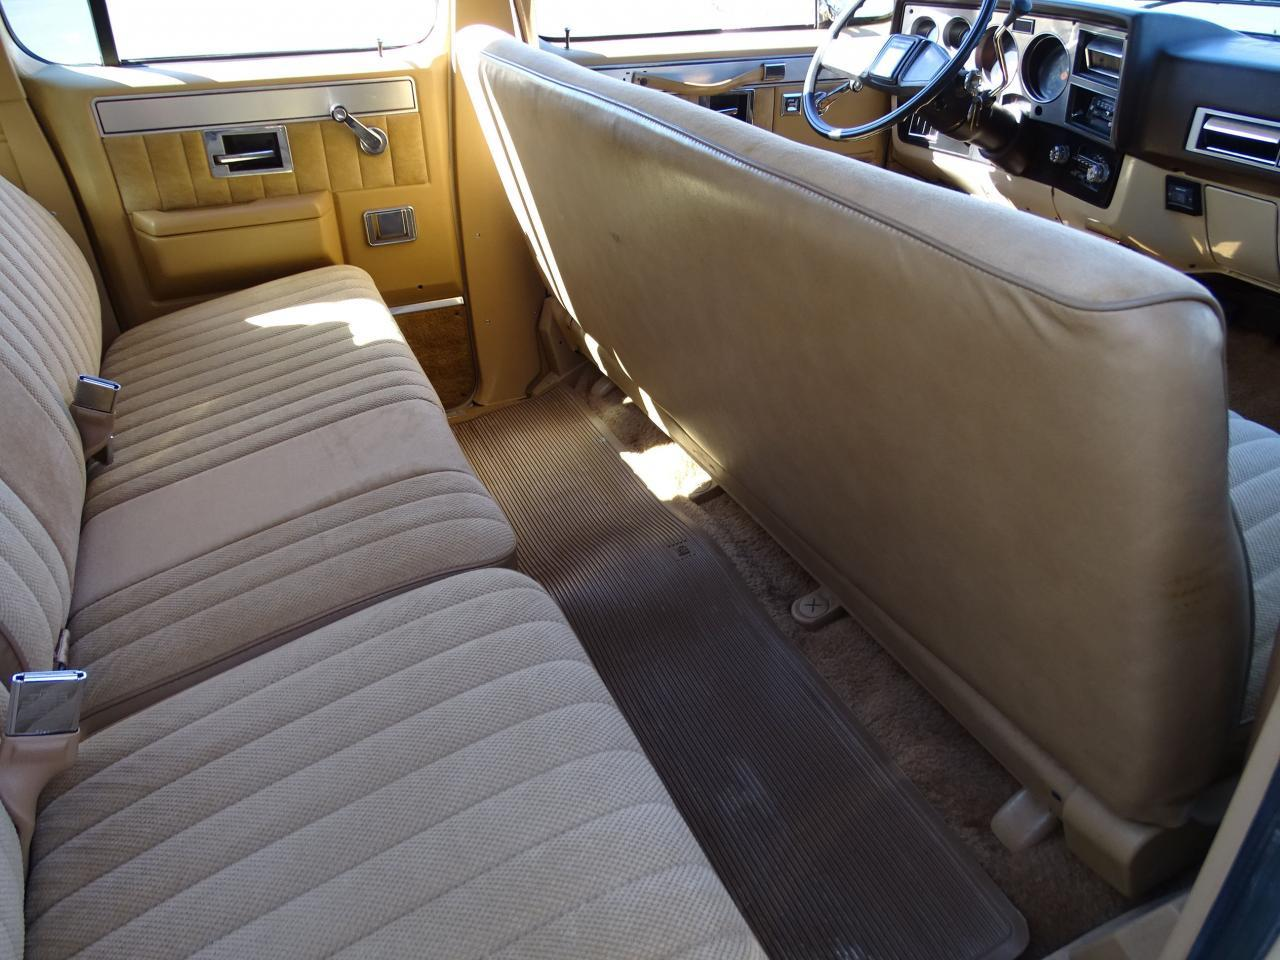 Large Picture of '86 C/K 20 located in Illinois - $10,595.00 Offered by Gateway Classic Cars - St. Louis - MZE8